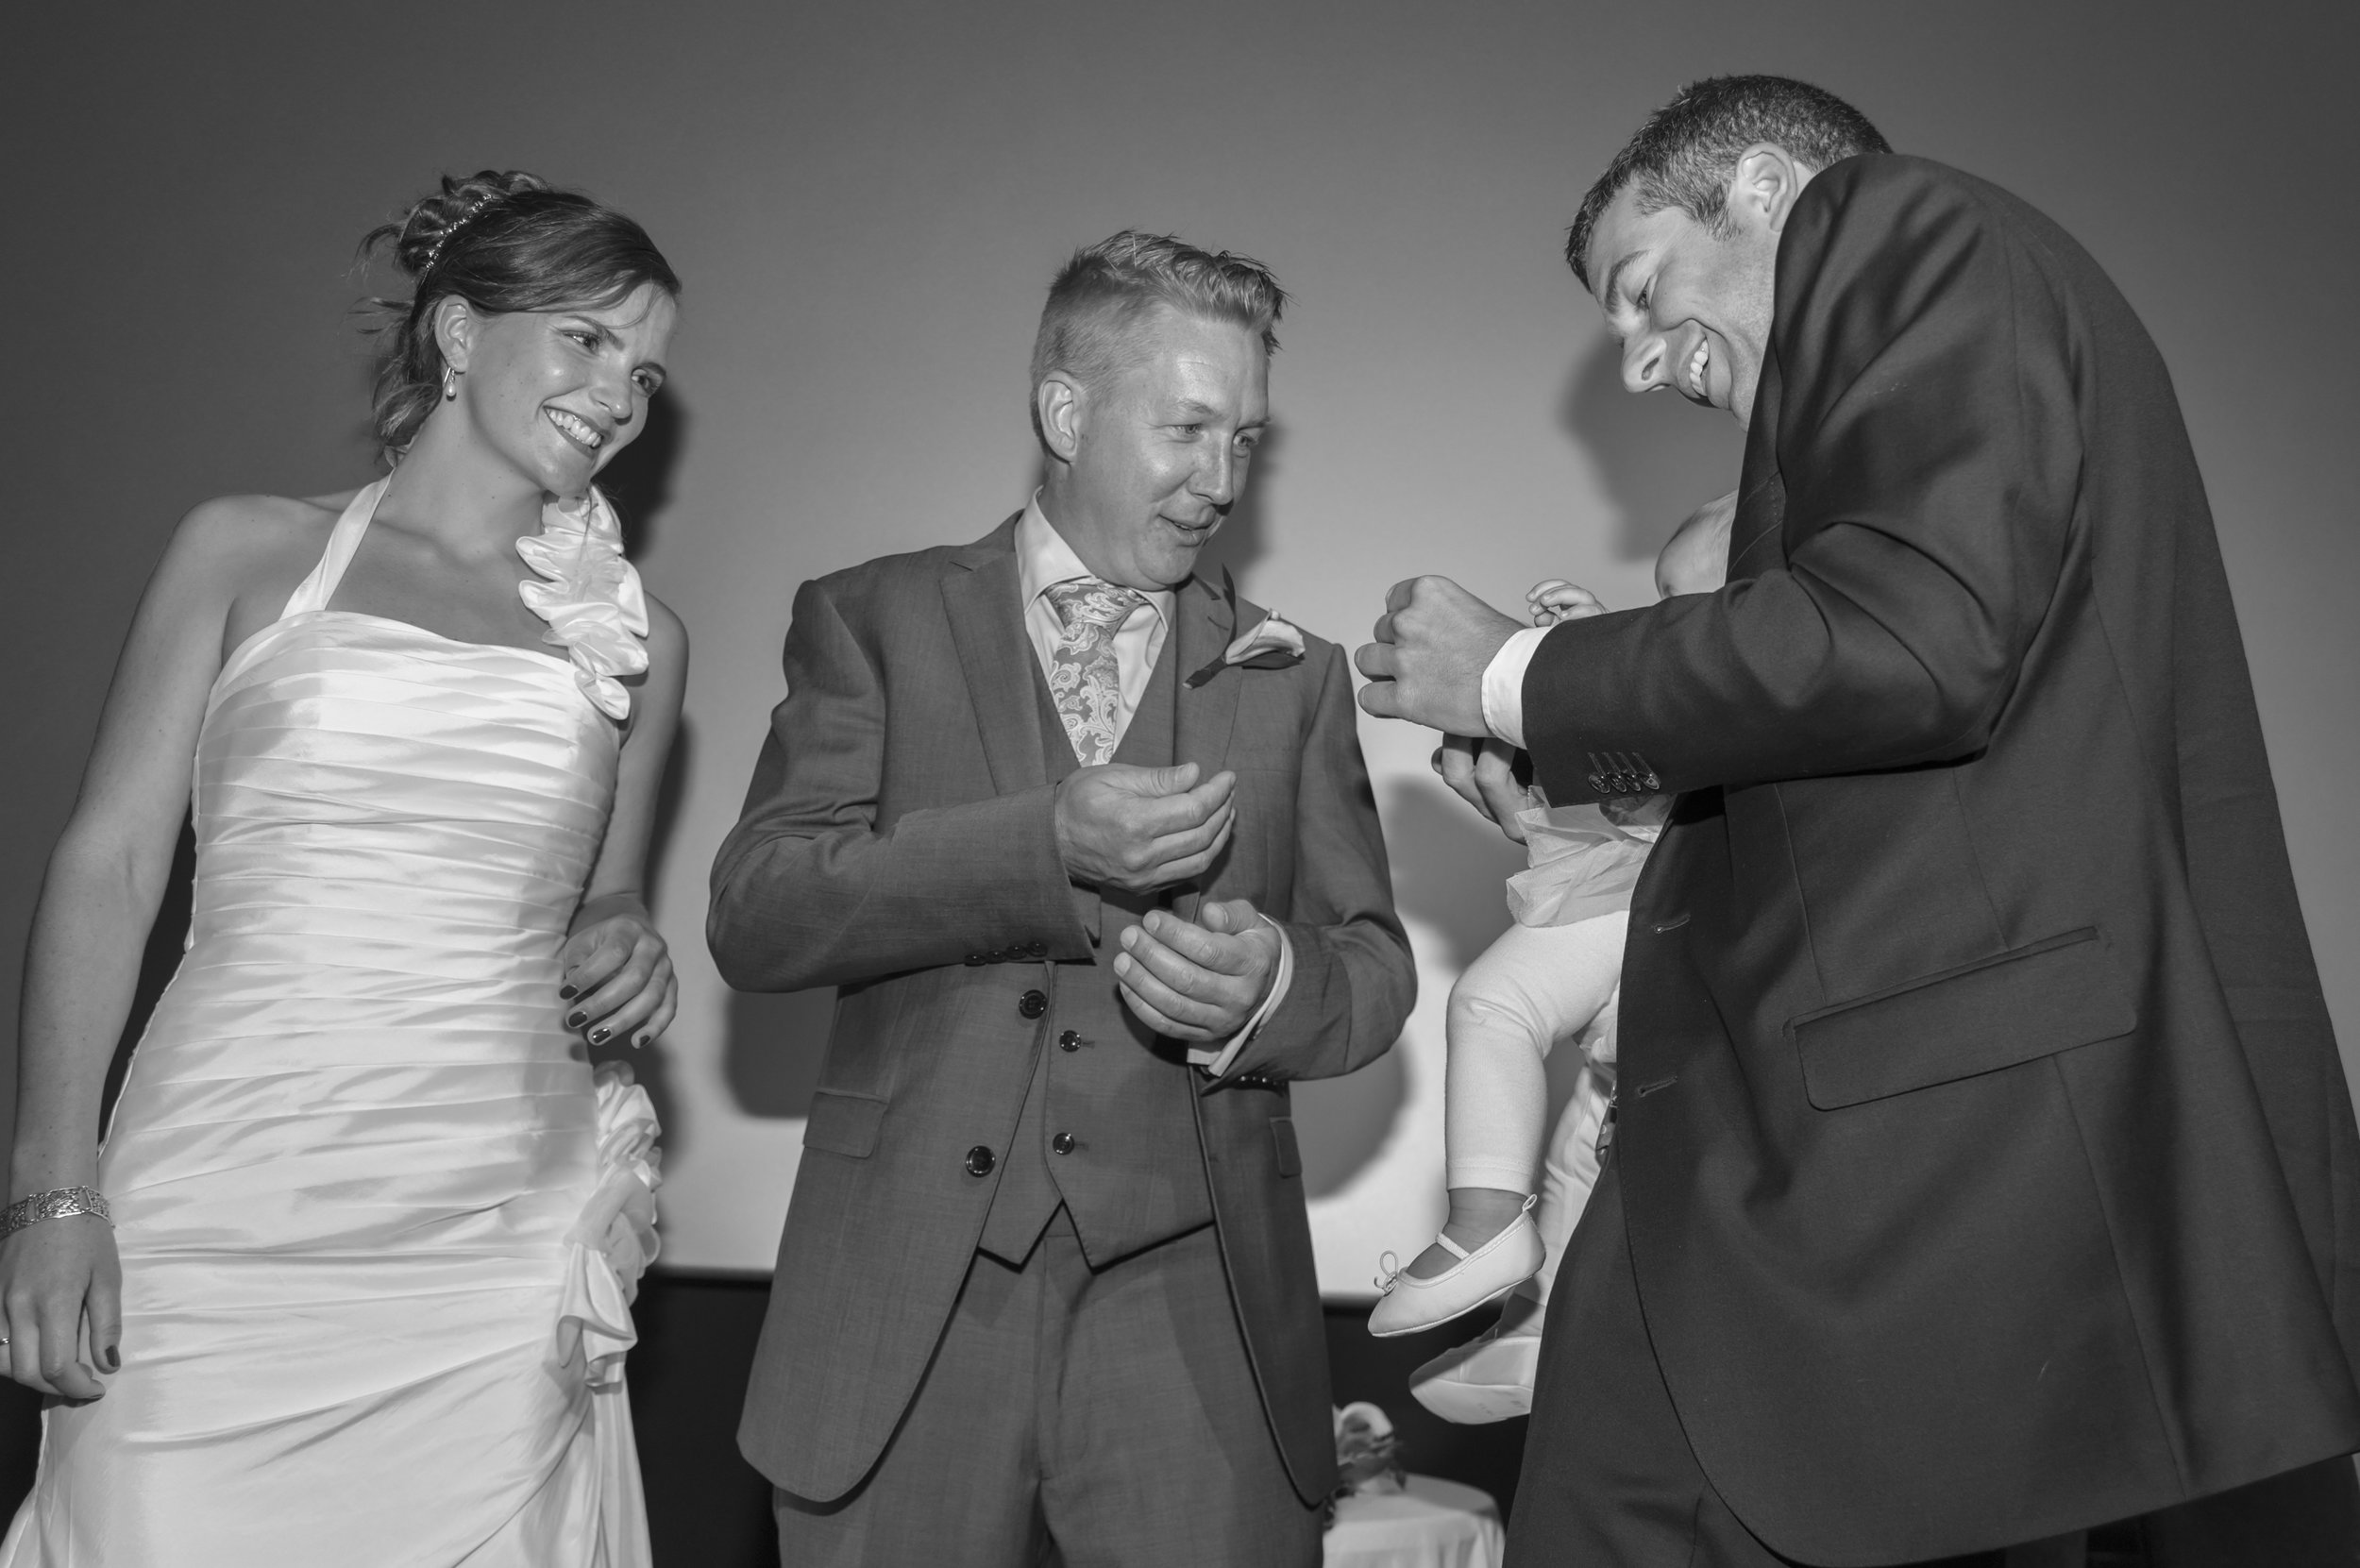 Wedding Photography - Brighton, Komedia 8